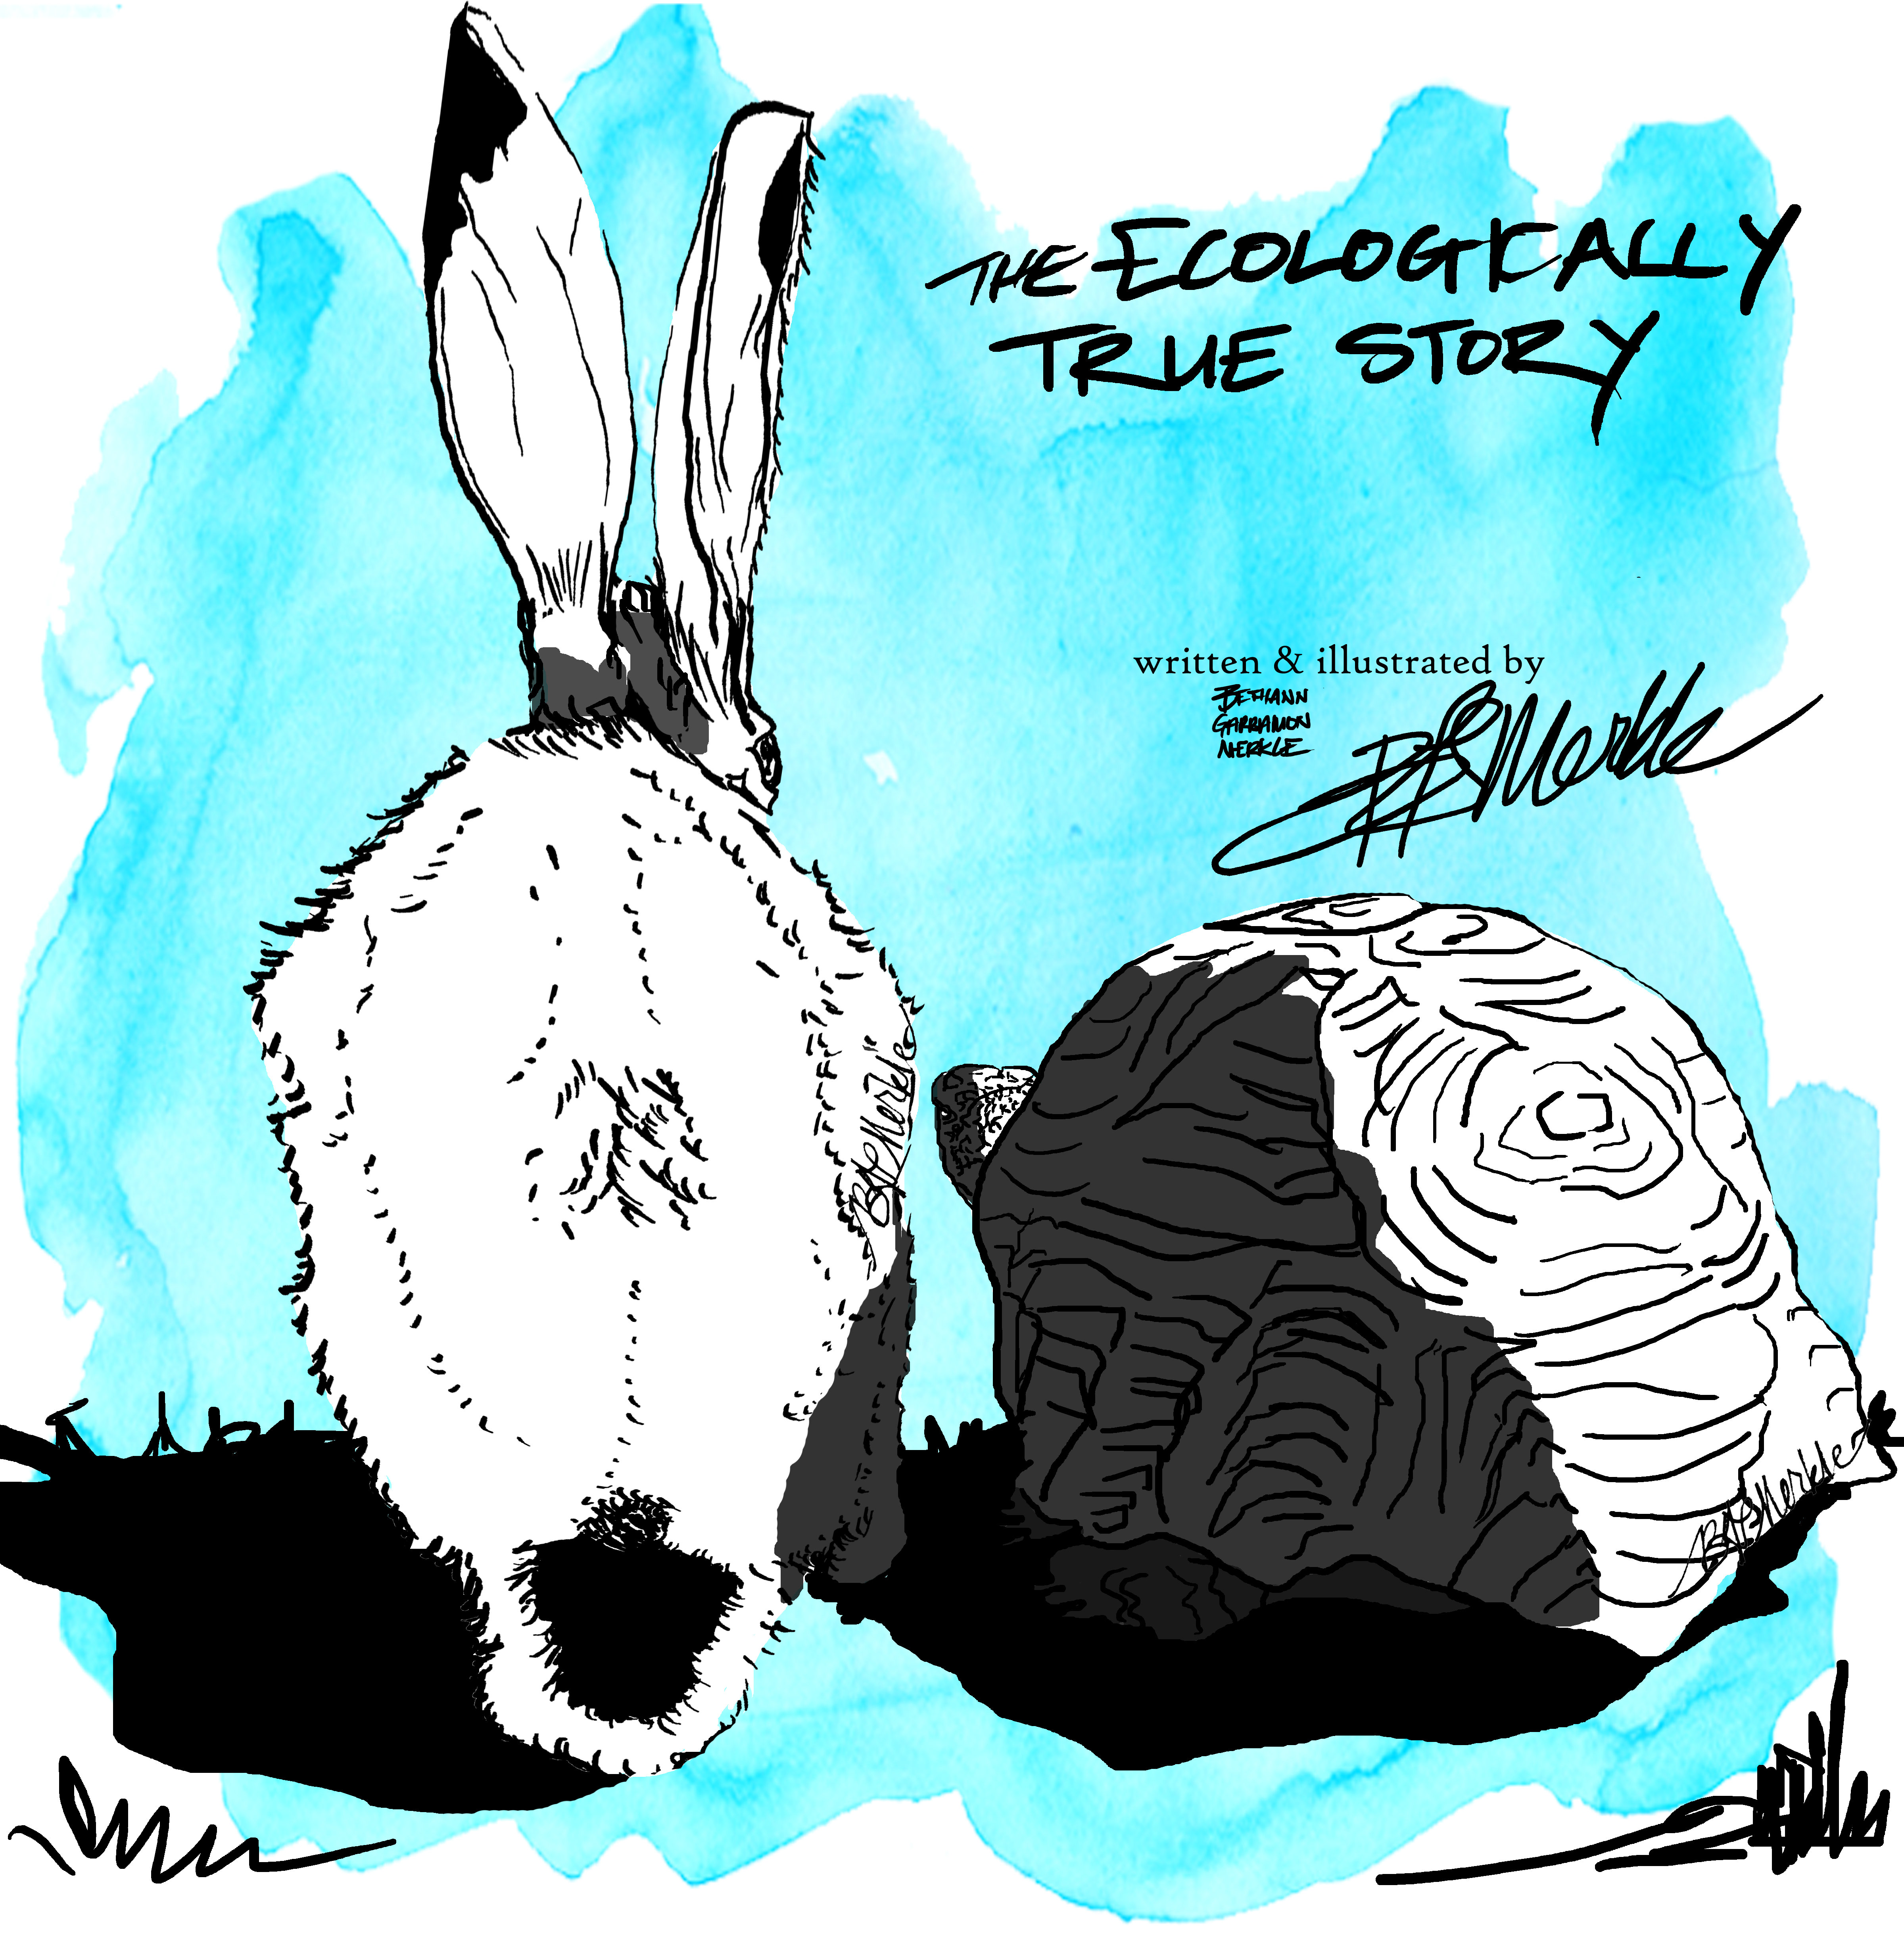 "Project logo for ""An Ecologically True Story: Rethinking the Fable of the Tortoise and the Hare"" - displays a tortoise and hare, along with the text ""The Ecologically True Story"" and ""Written and illustrated by Bethann Garramon Merkle"""